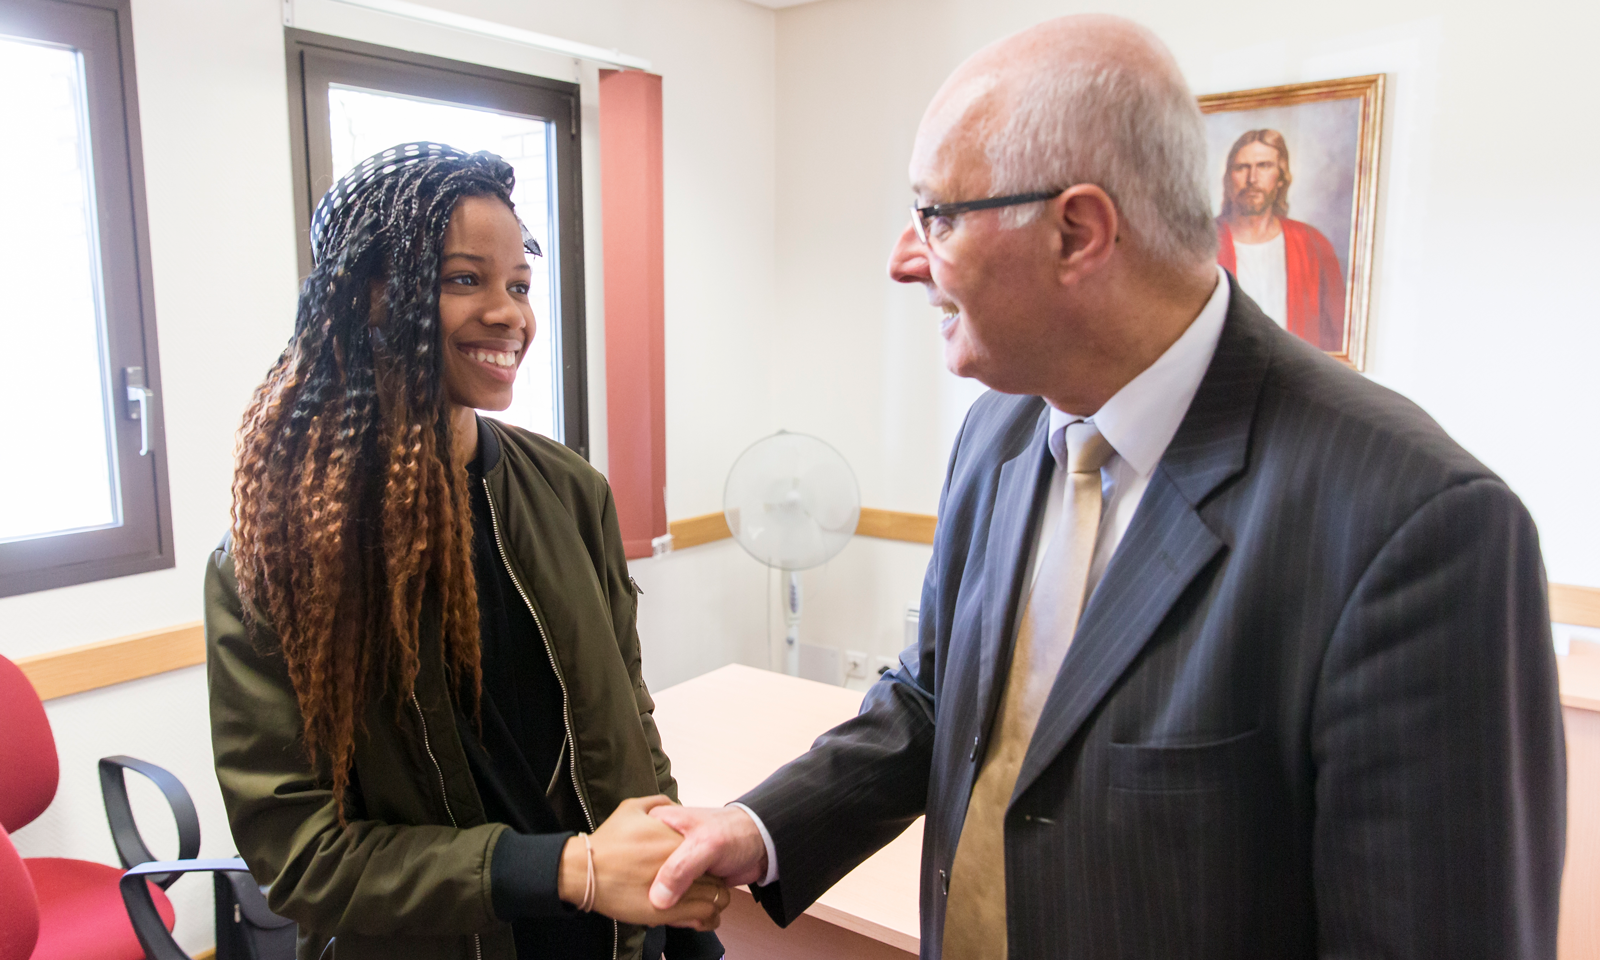 A bishop shakes the hand of a young woman. As President Russell M. Nelson emphasized in the October general conference, the primary responsibility of a bishop is to care for the youth.